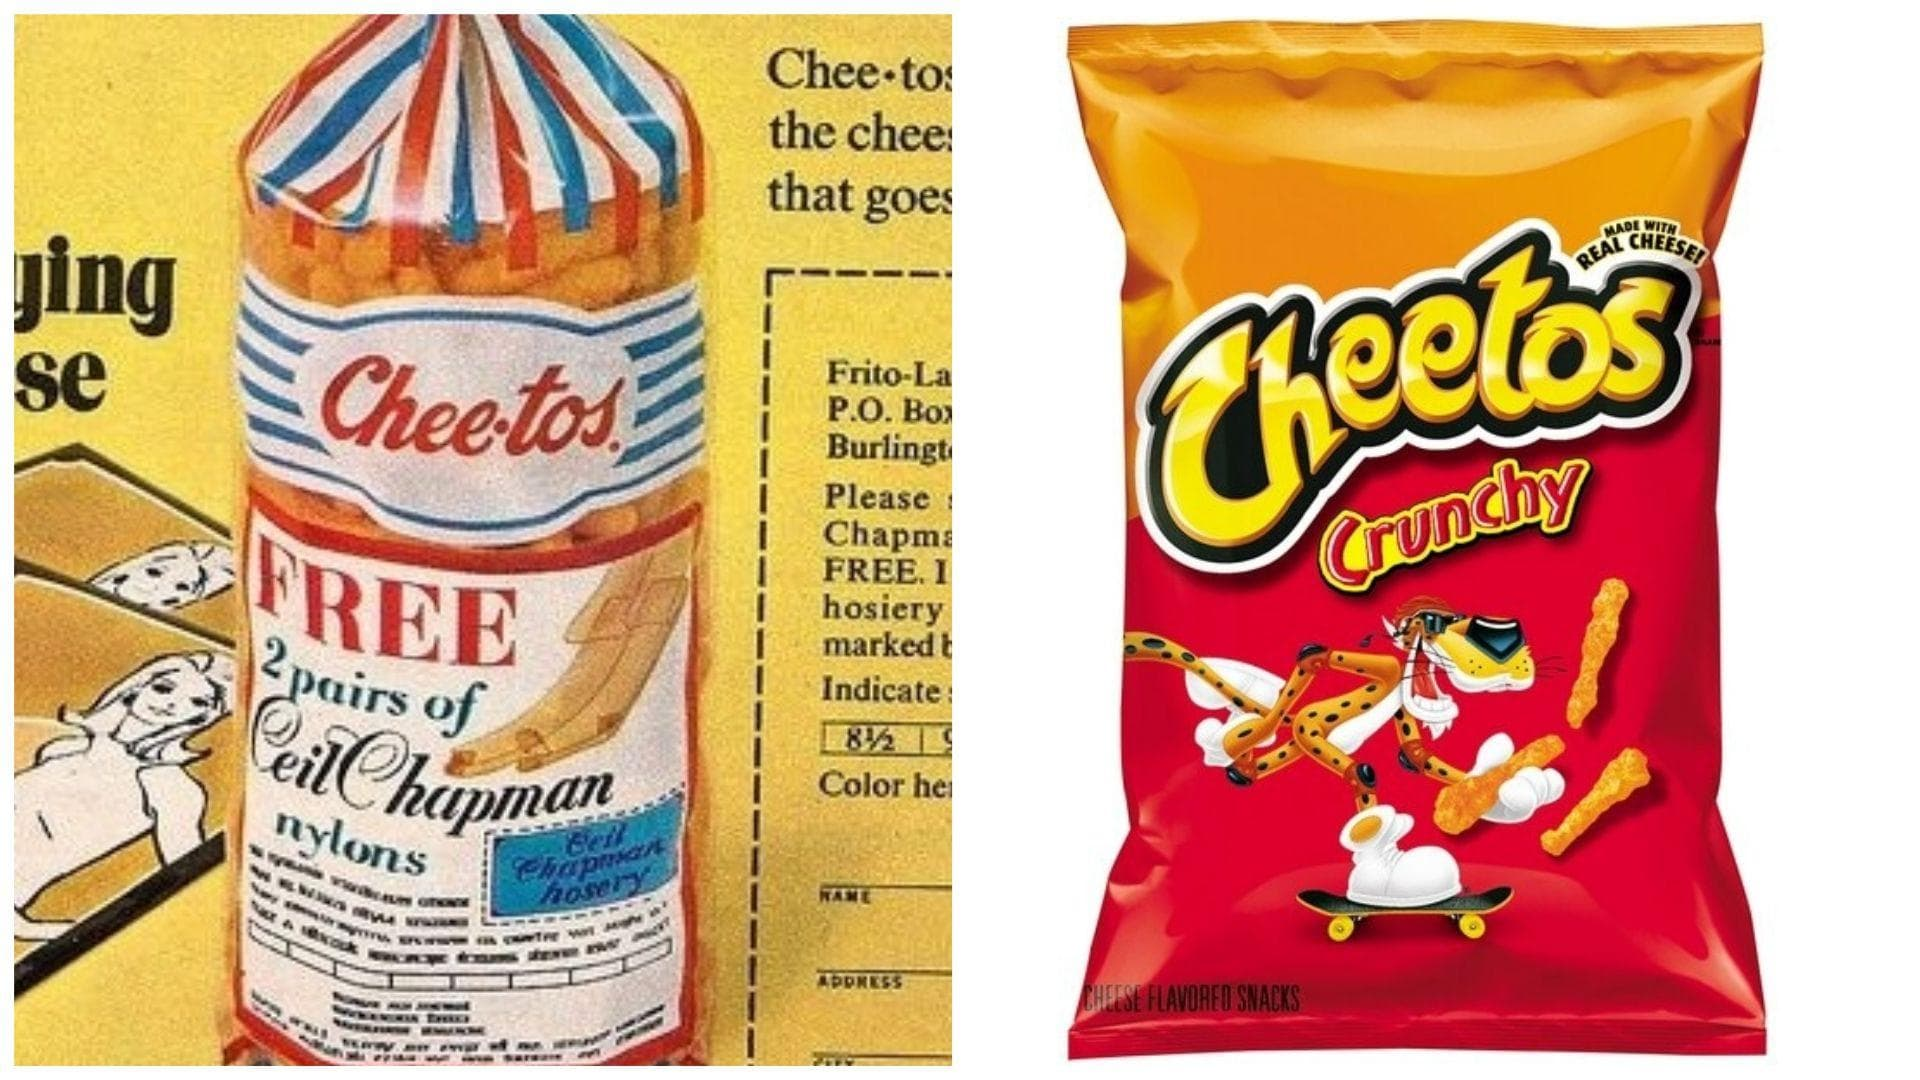 Cheetos, 1968 Vs. 2019 on Random Potato Chip Bags Have Changed Over Tim